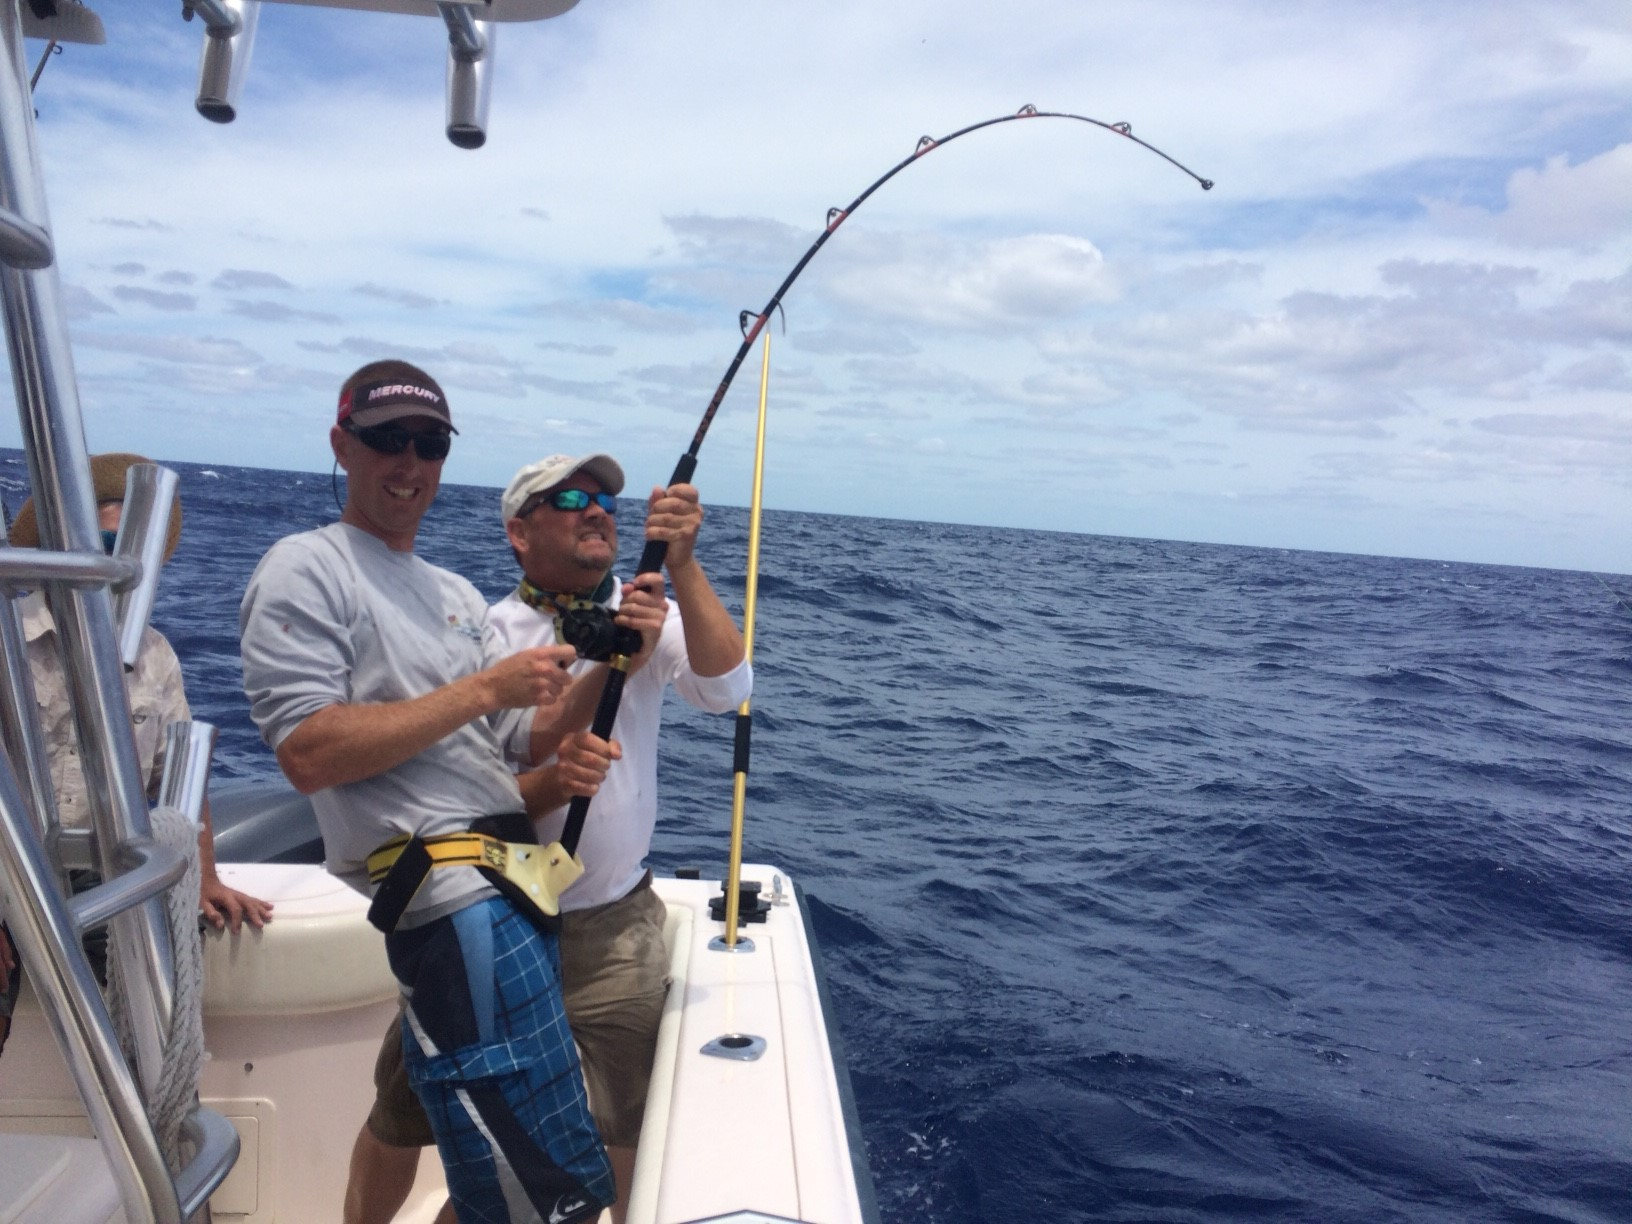 Even both of these guys have their hands full charter fishing with Capt. Doug off Marathon in the Fl Keys.